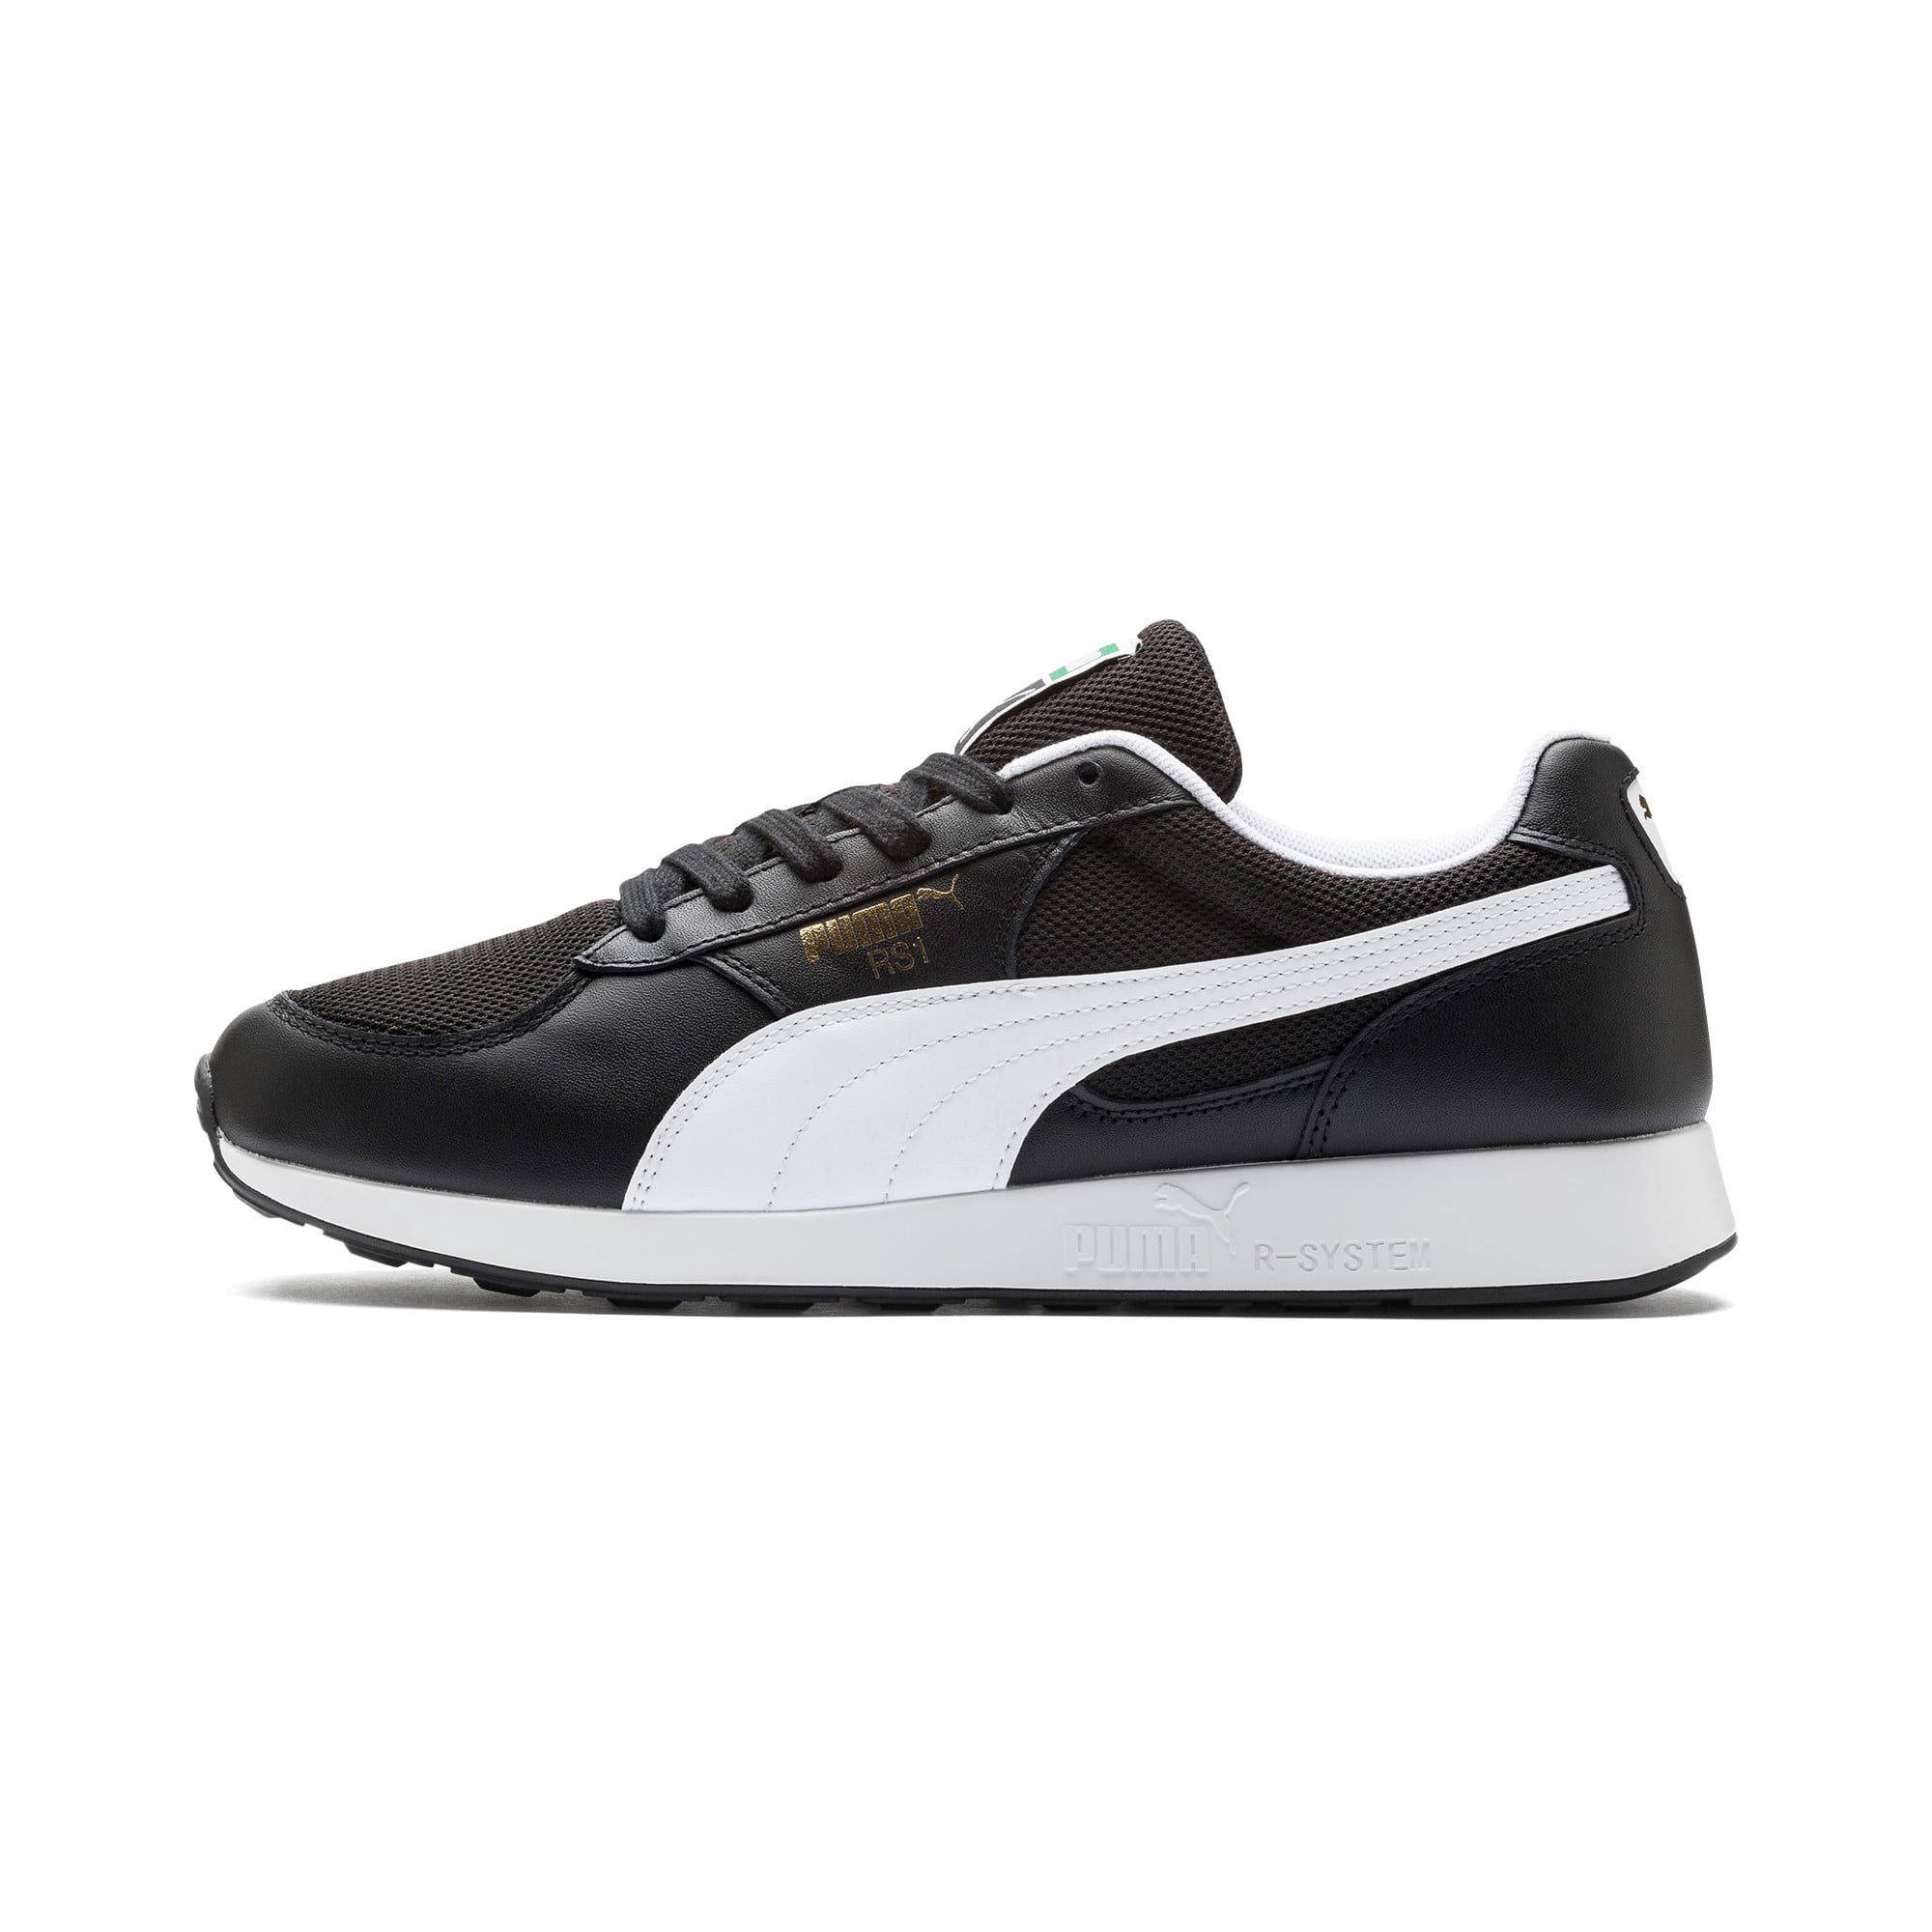 Thumbnail 1 of RS-1 OG Trainers, Puma Black-CASTLEROCK, medium